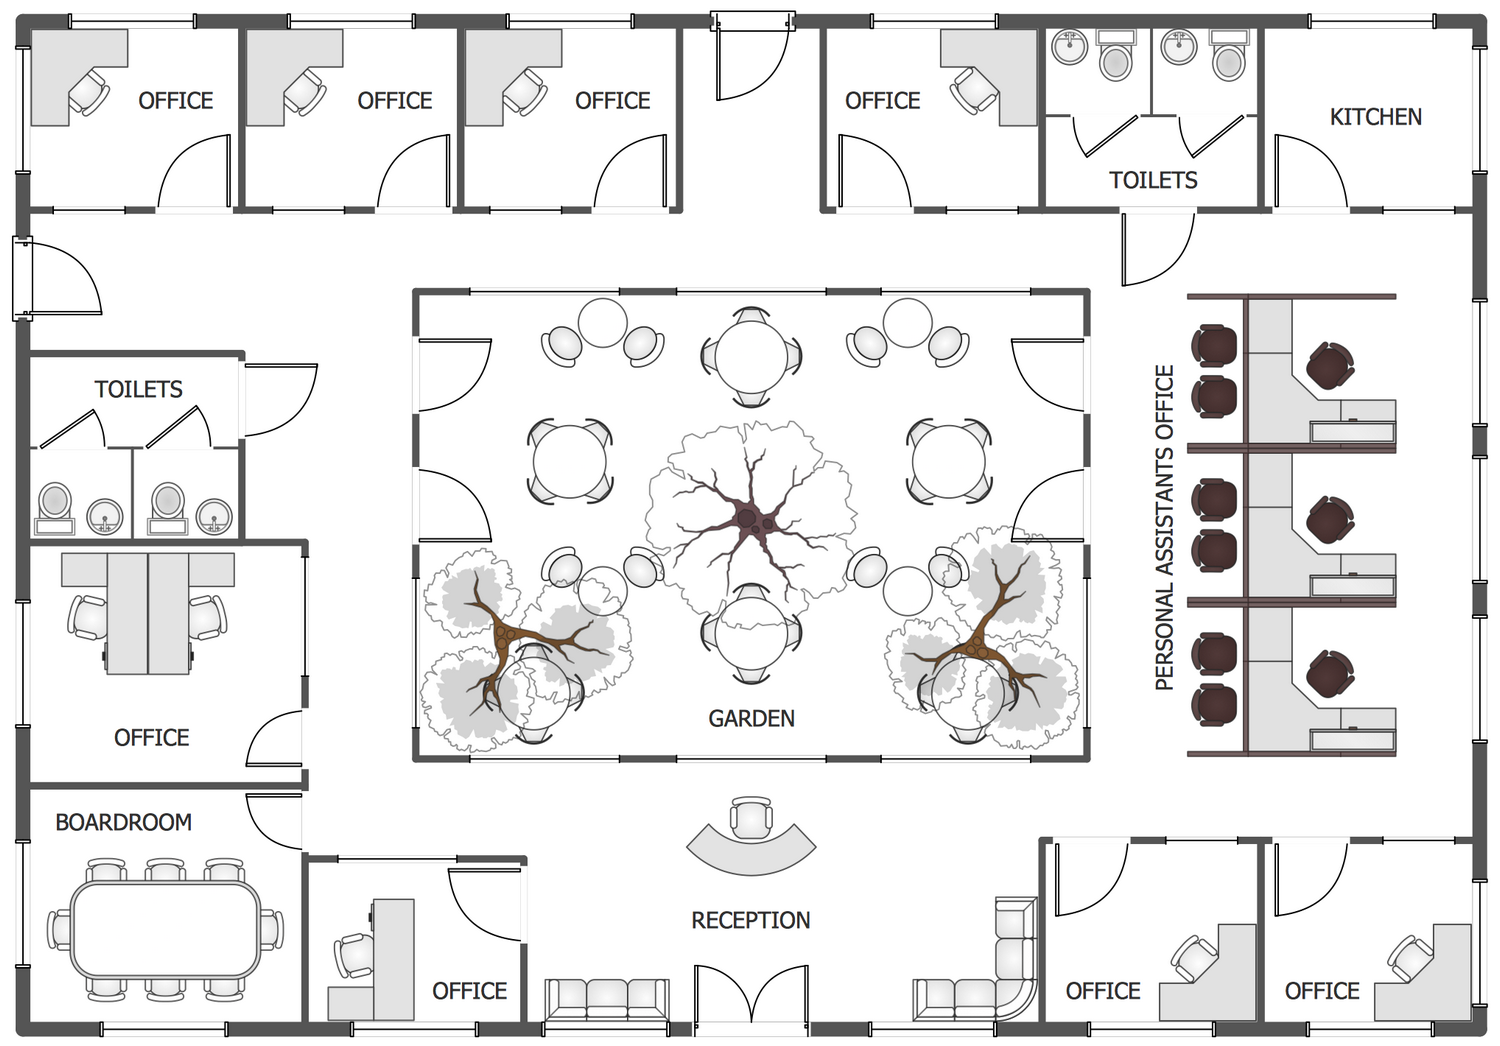 Superbe Office Cabinet Office Floor Plan